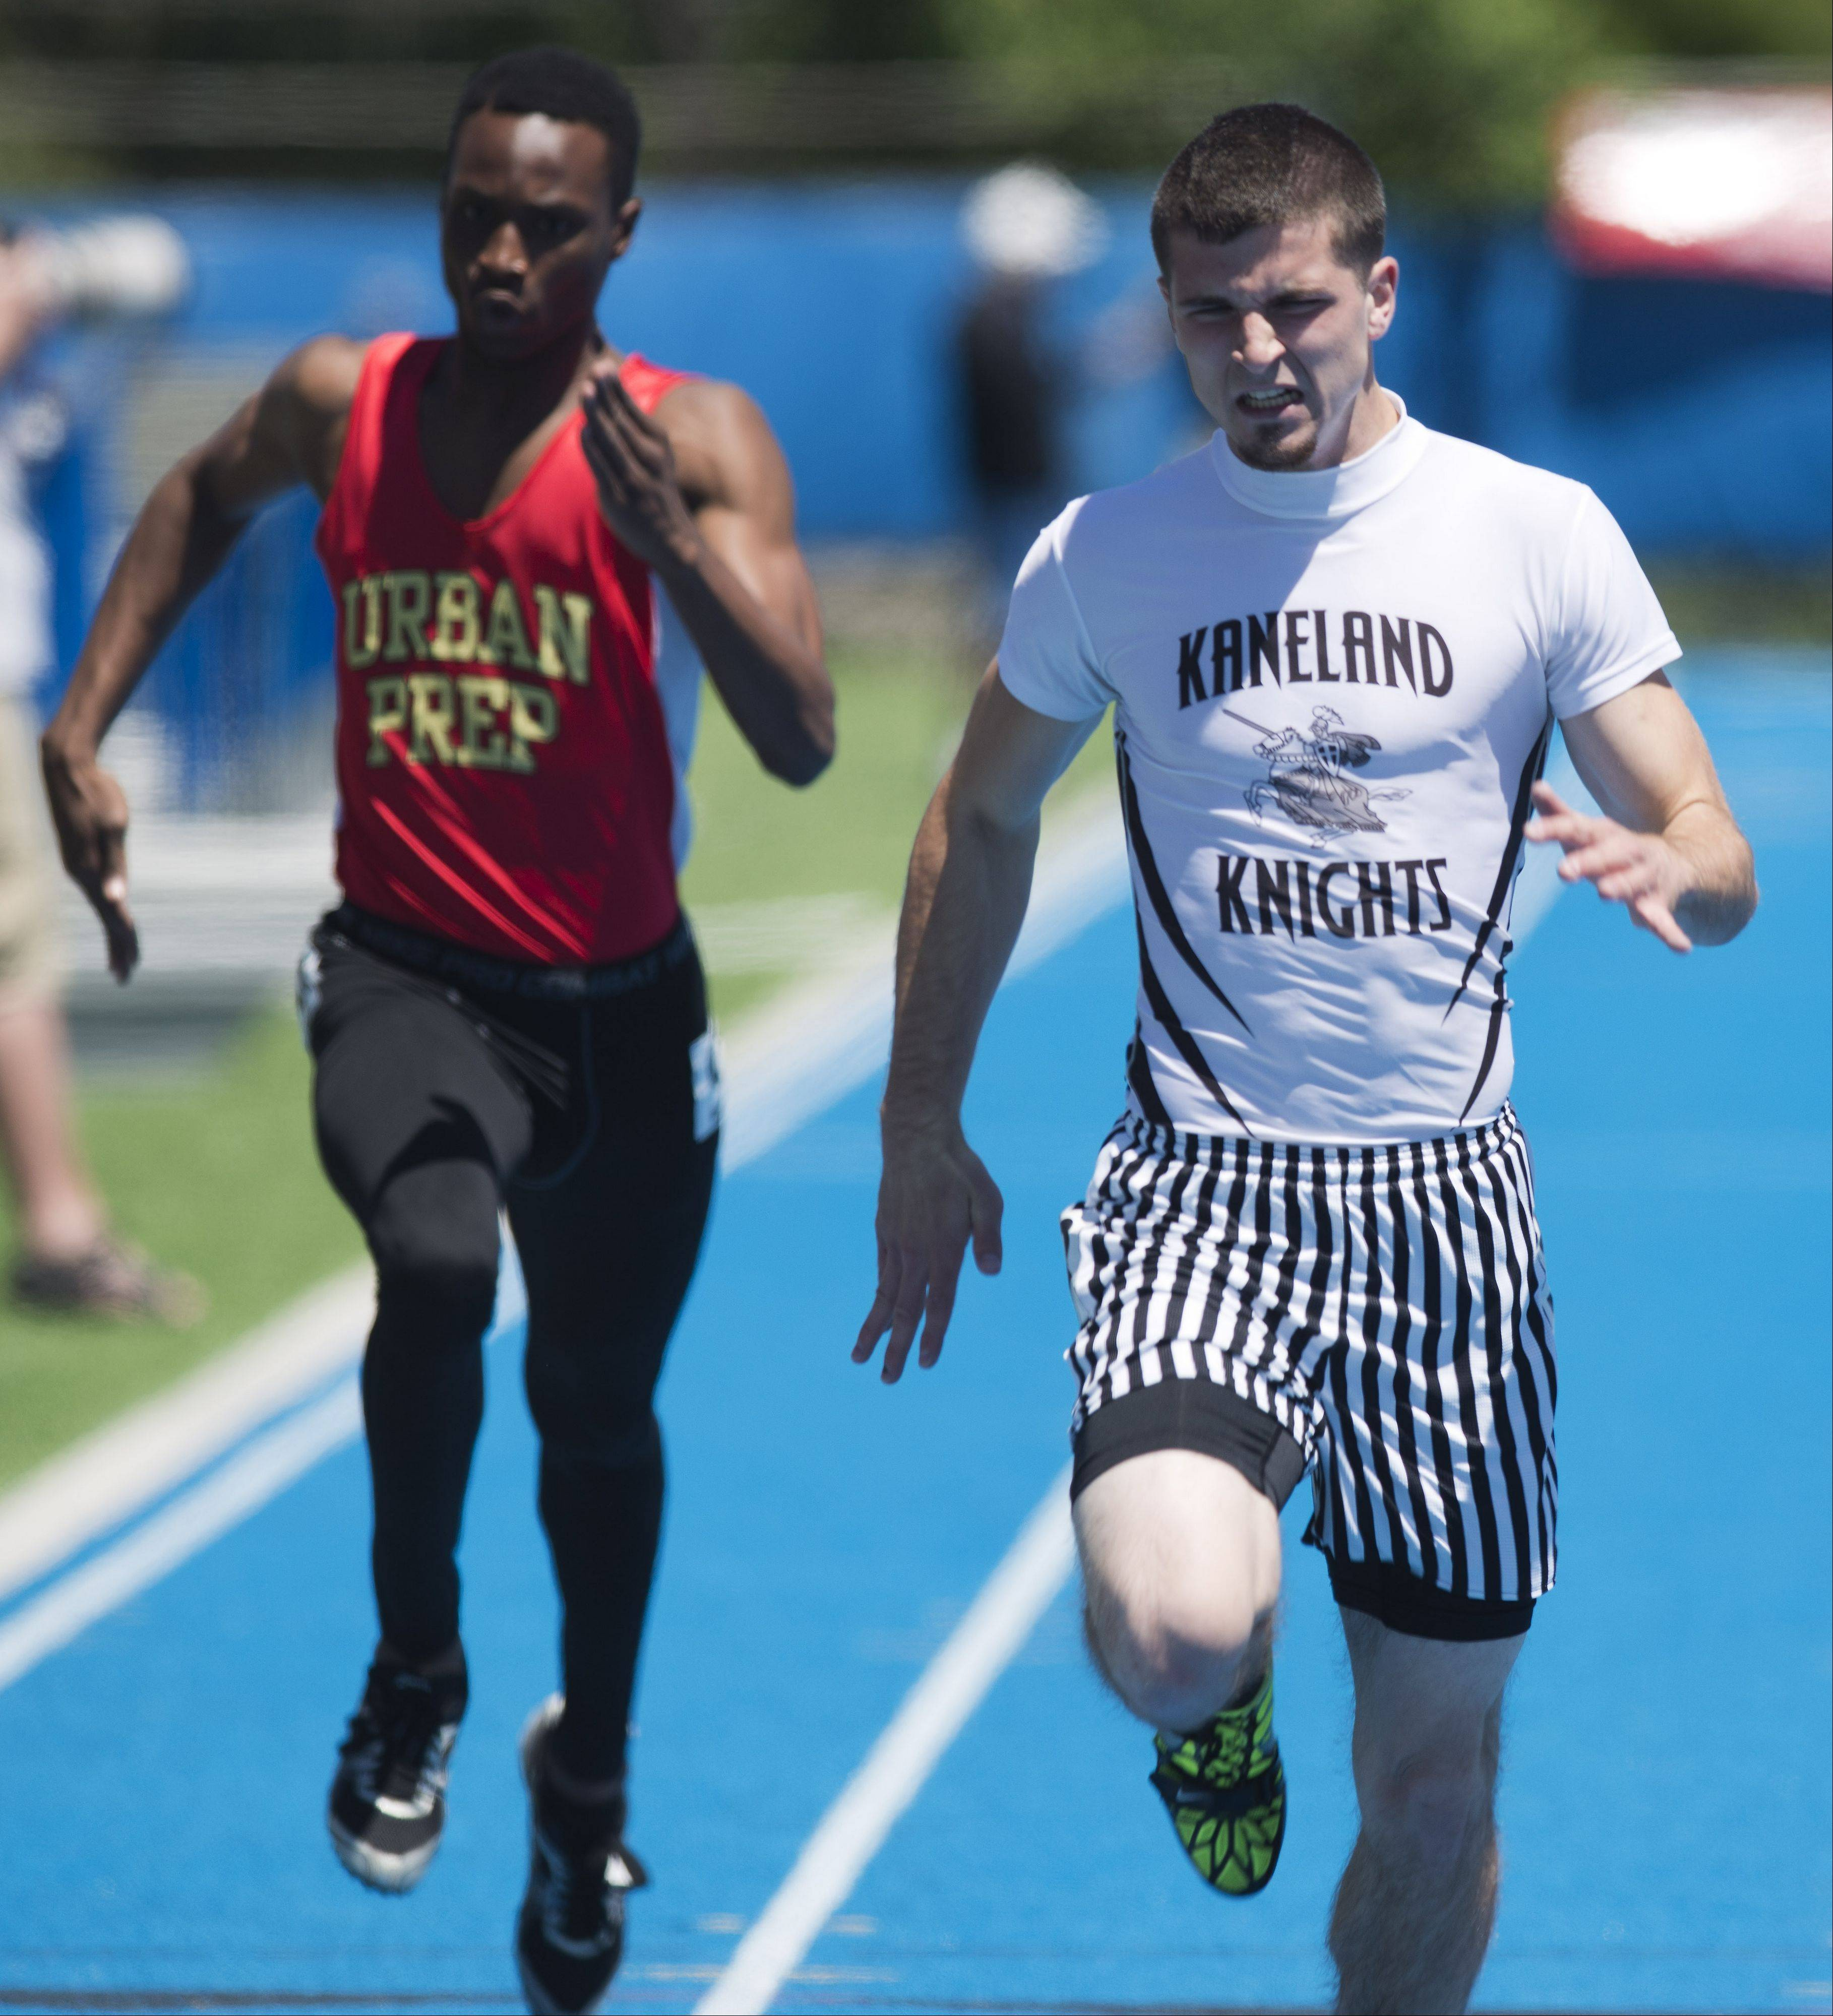 Kaneland's Brandon Bishop crosses the finish line in the Class 2A 200-meter dash during the boys track and field state meet preliminaries in Charleston on Friday.